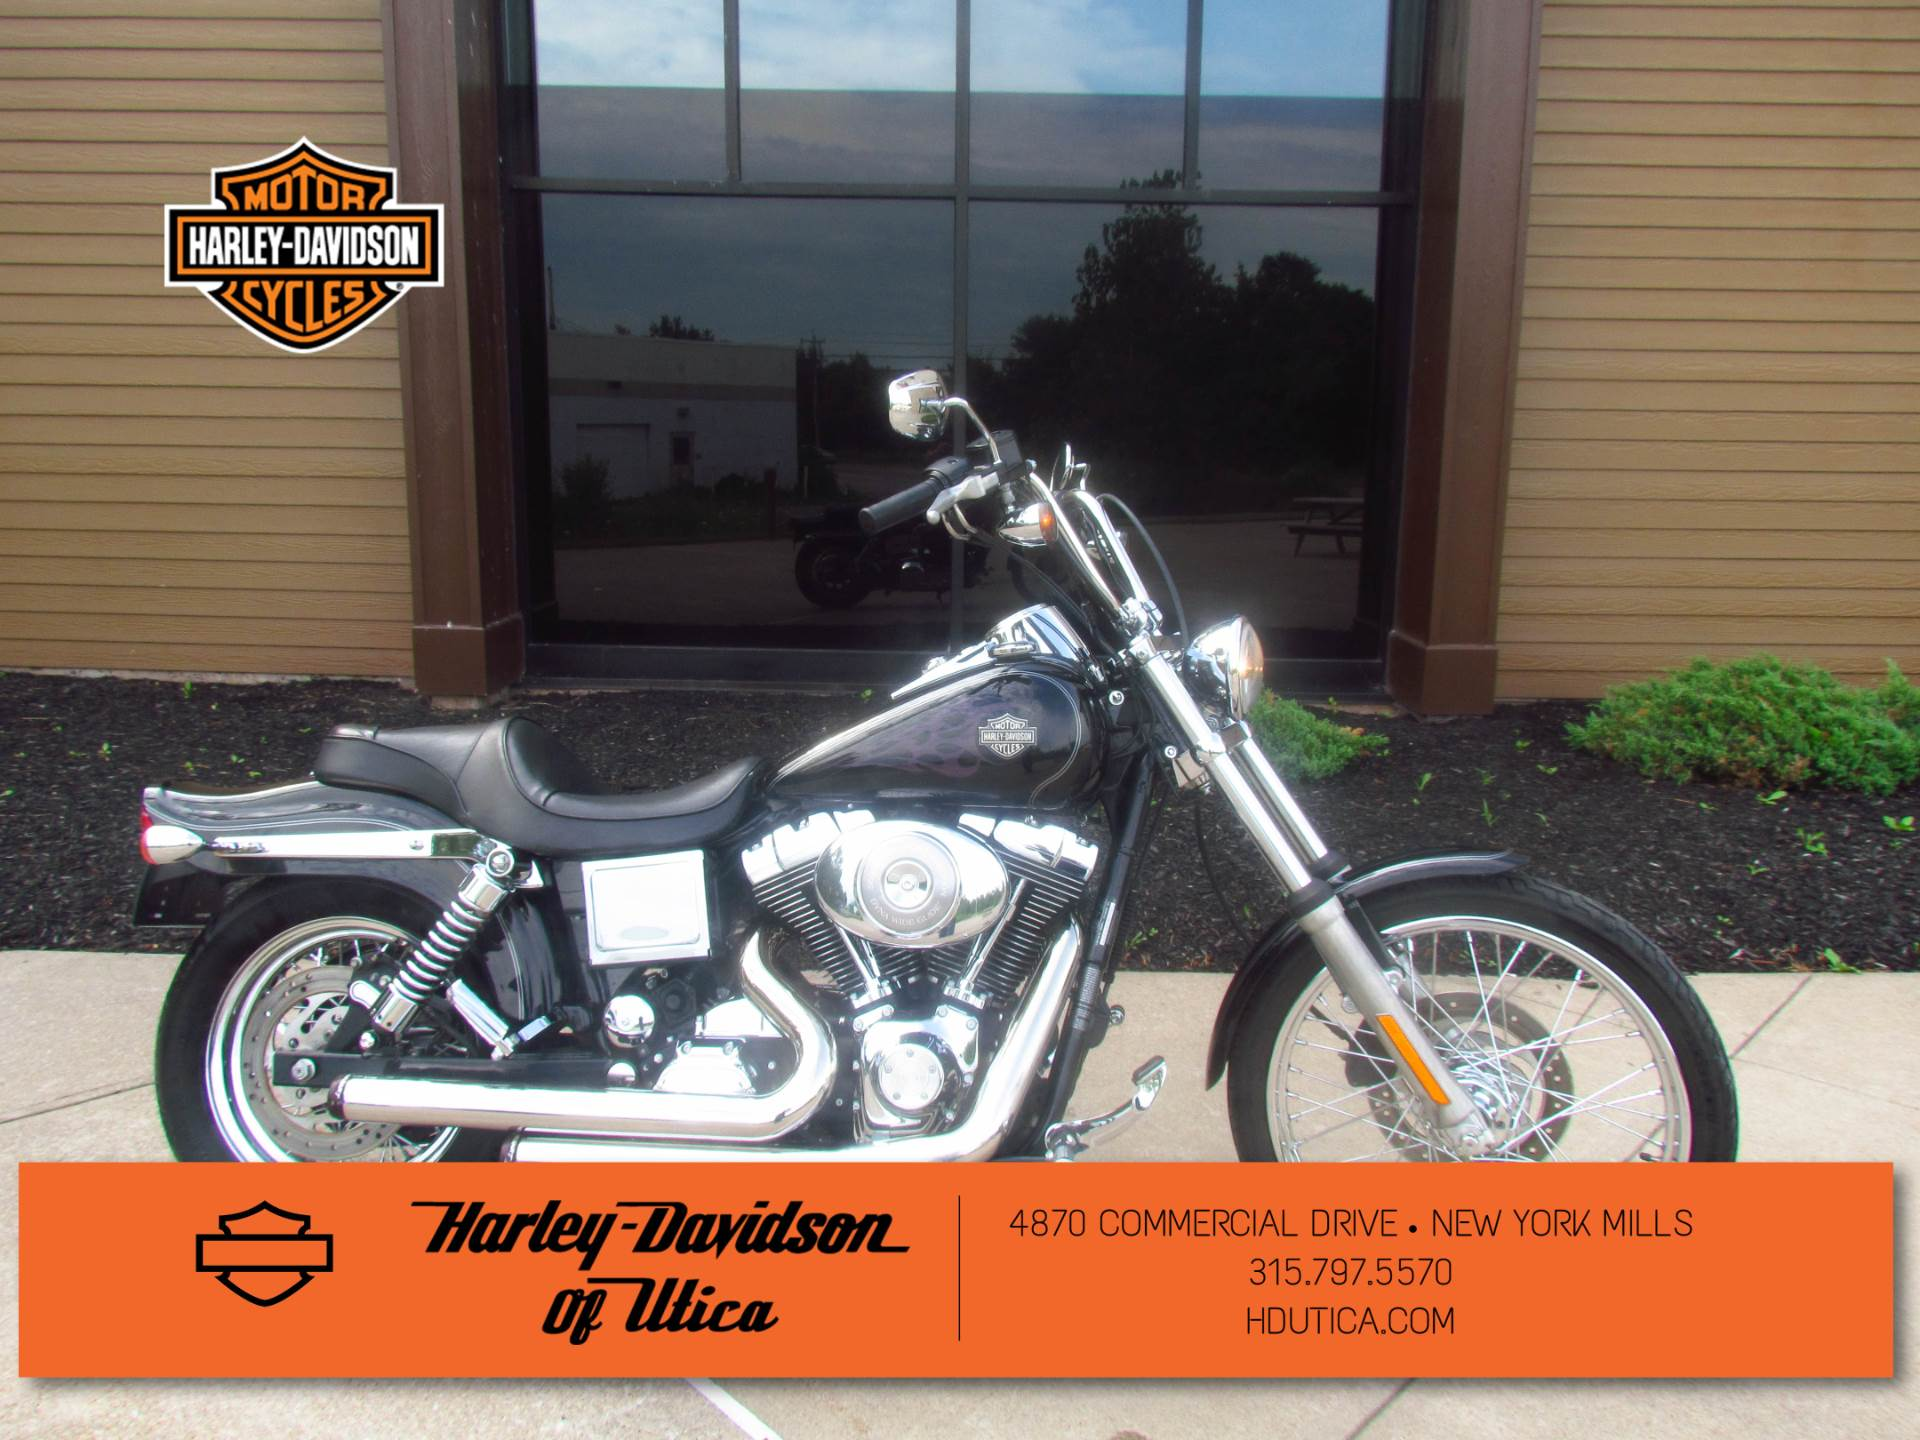 2005 Harley-Davidson FXDWG/FXDWGI Dyna Wide Glide® in New York Mills, New York - Photo 1